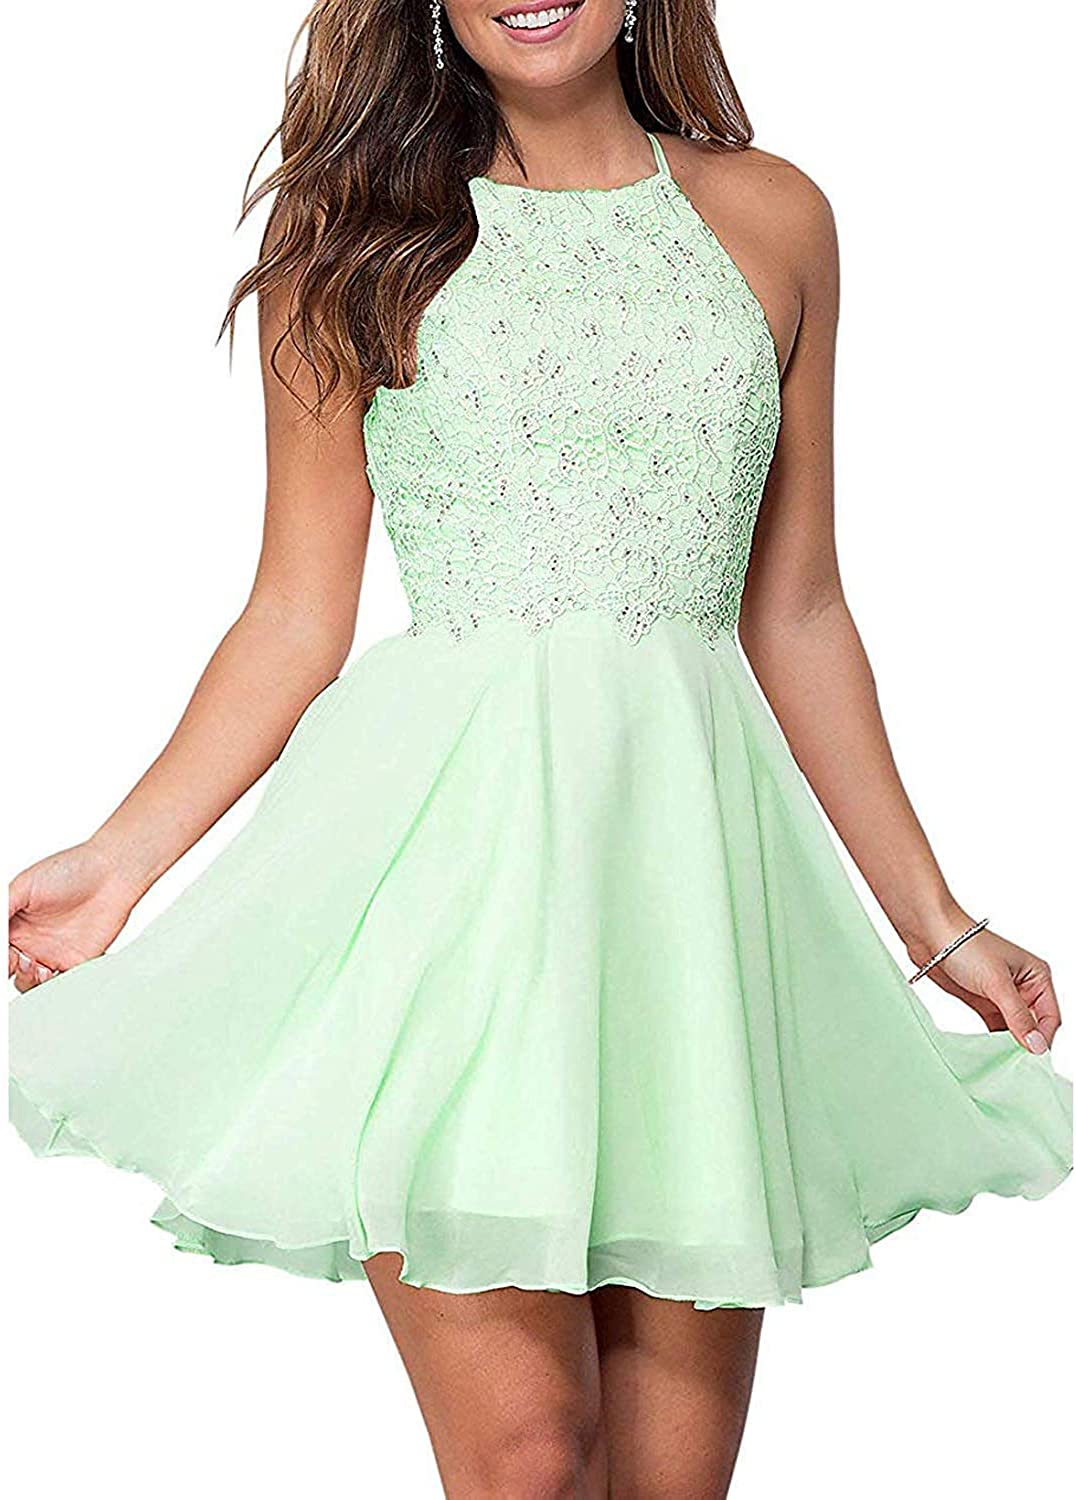 Zaozc Halter Lace Homecoming Dresses for Juniors Backless Chiffon Formal Short Prom Cocktail Gowns